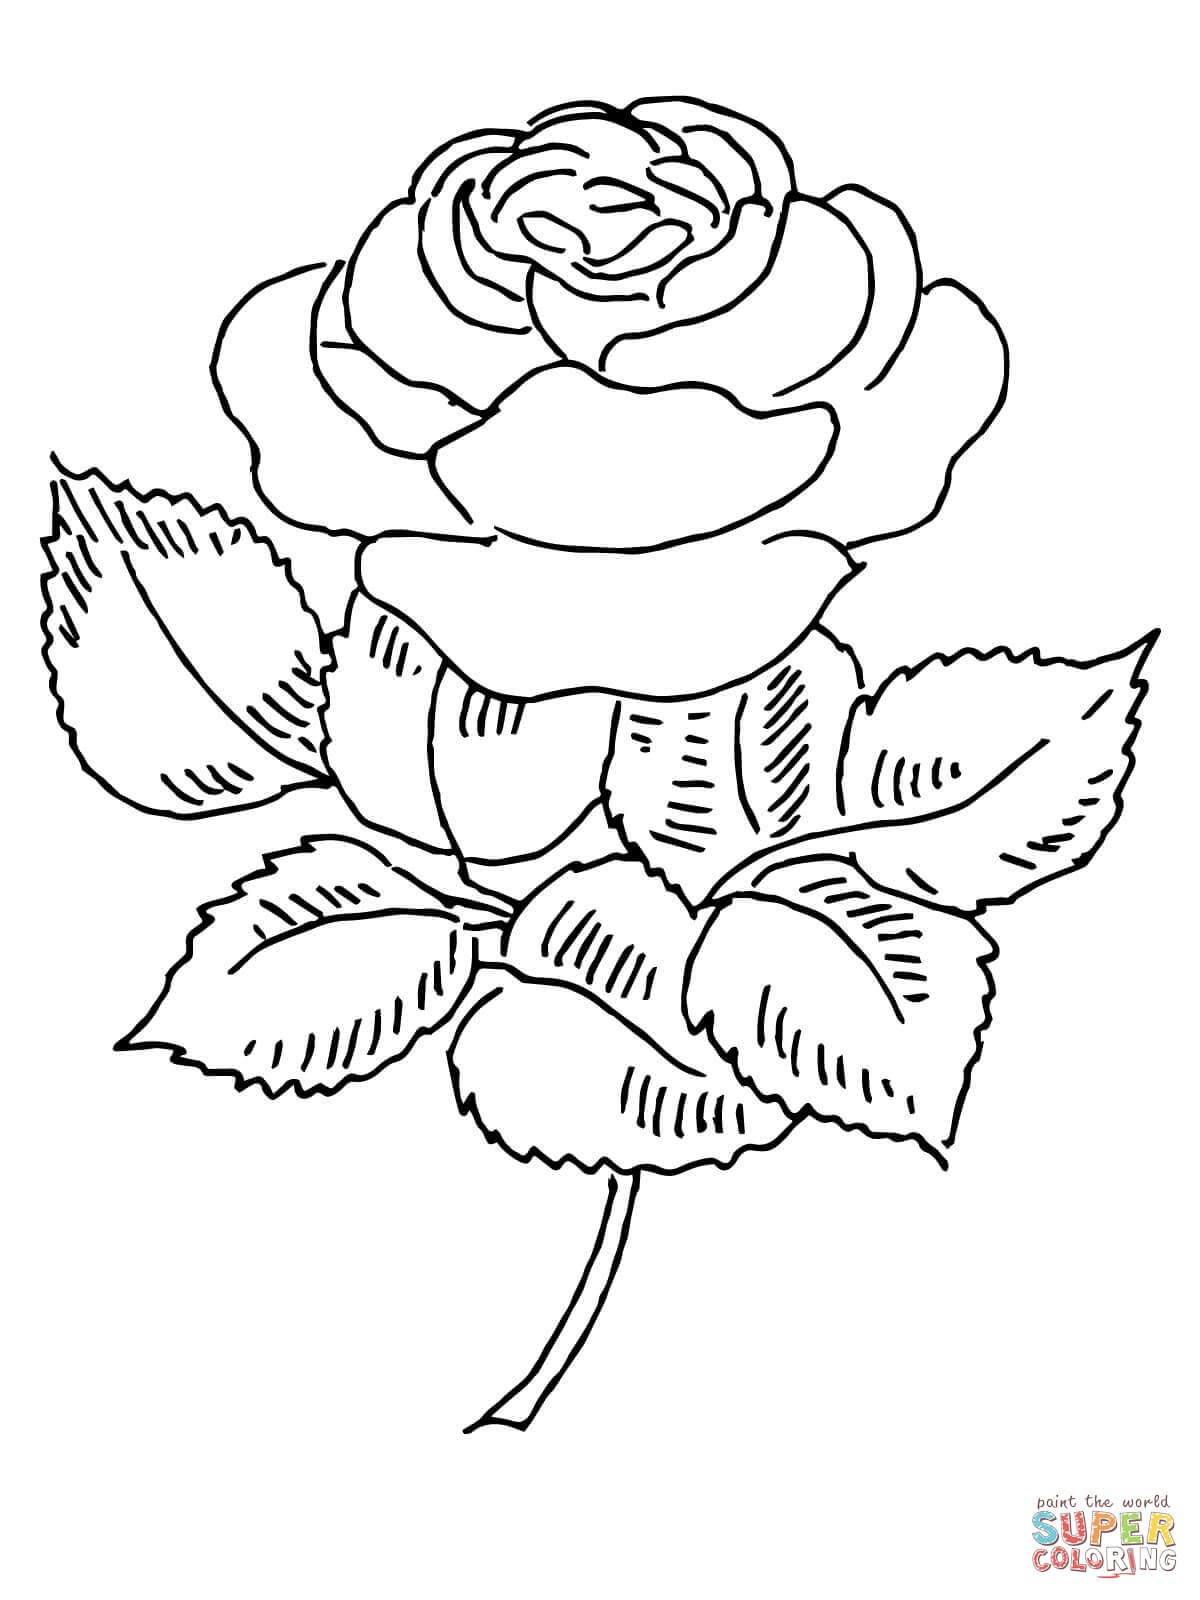 Roses Coloring Pages Free Coloring Pages Download | Xsibe realistic ...